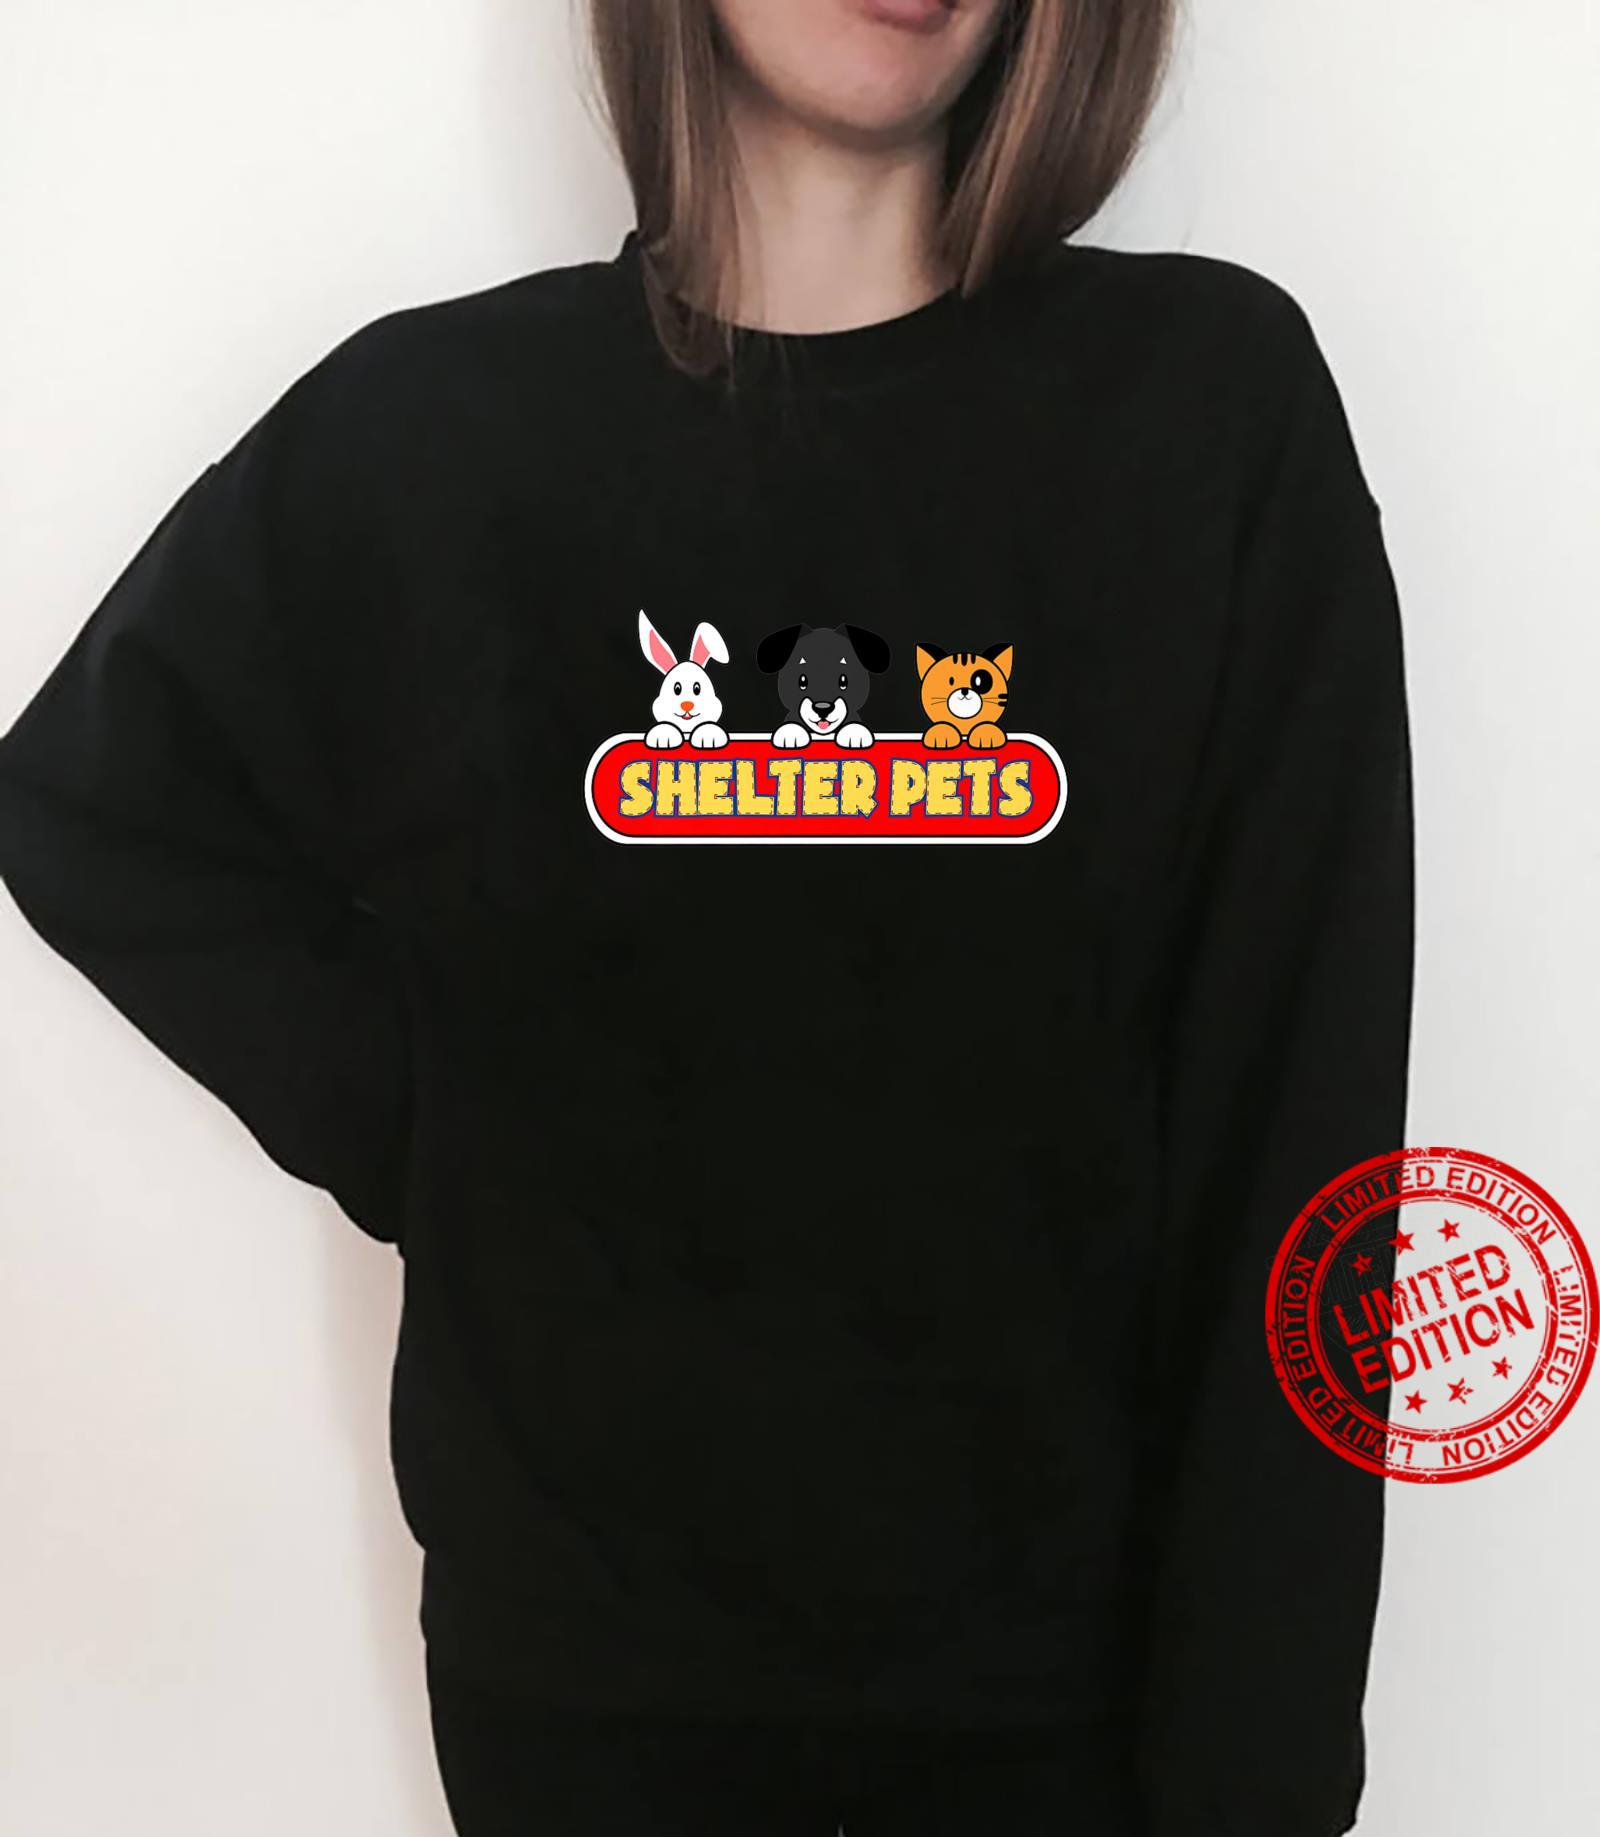 Shelter Pets for Dog Cat and Animal Rescues Adopt Don't Shop Shirt sweater